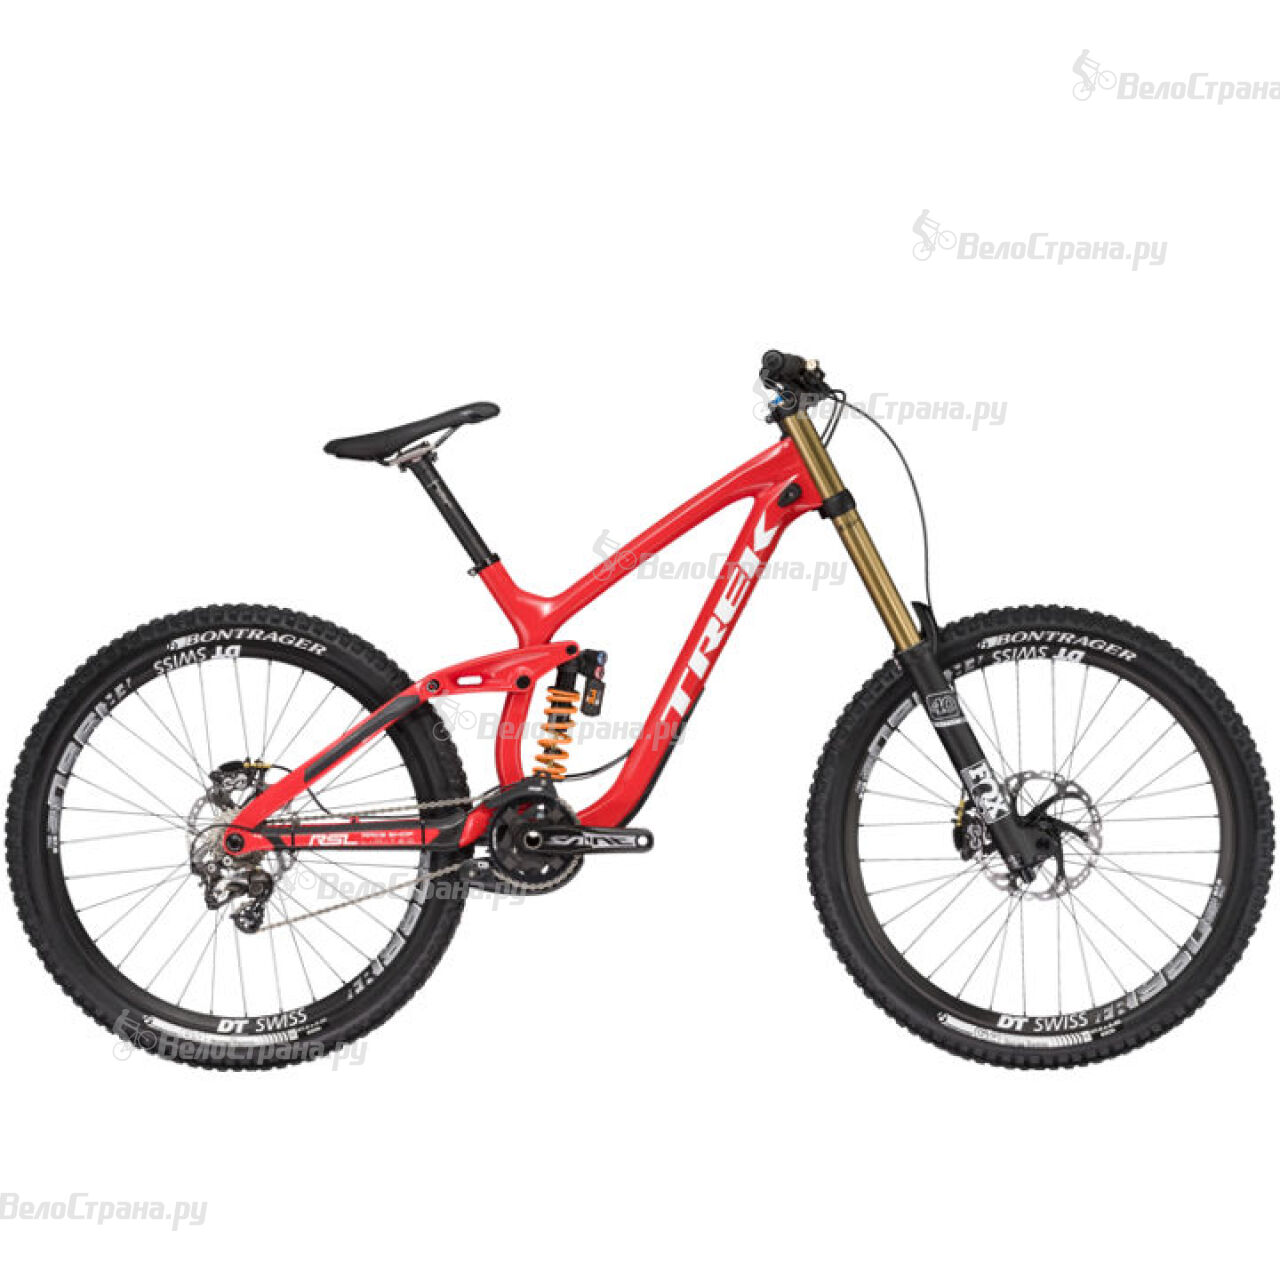 Велосипед Trek Session 9.9 DH 27.5 RSL (2017) fit dh 853c